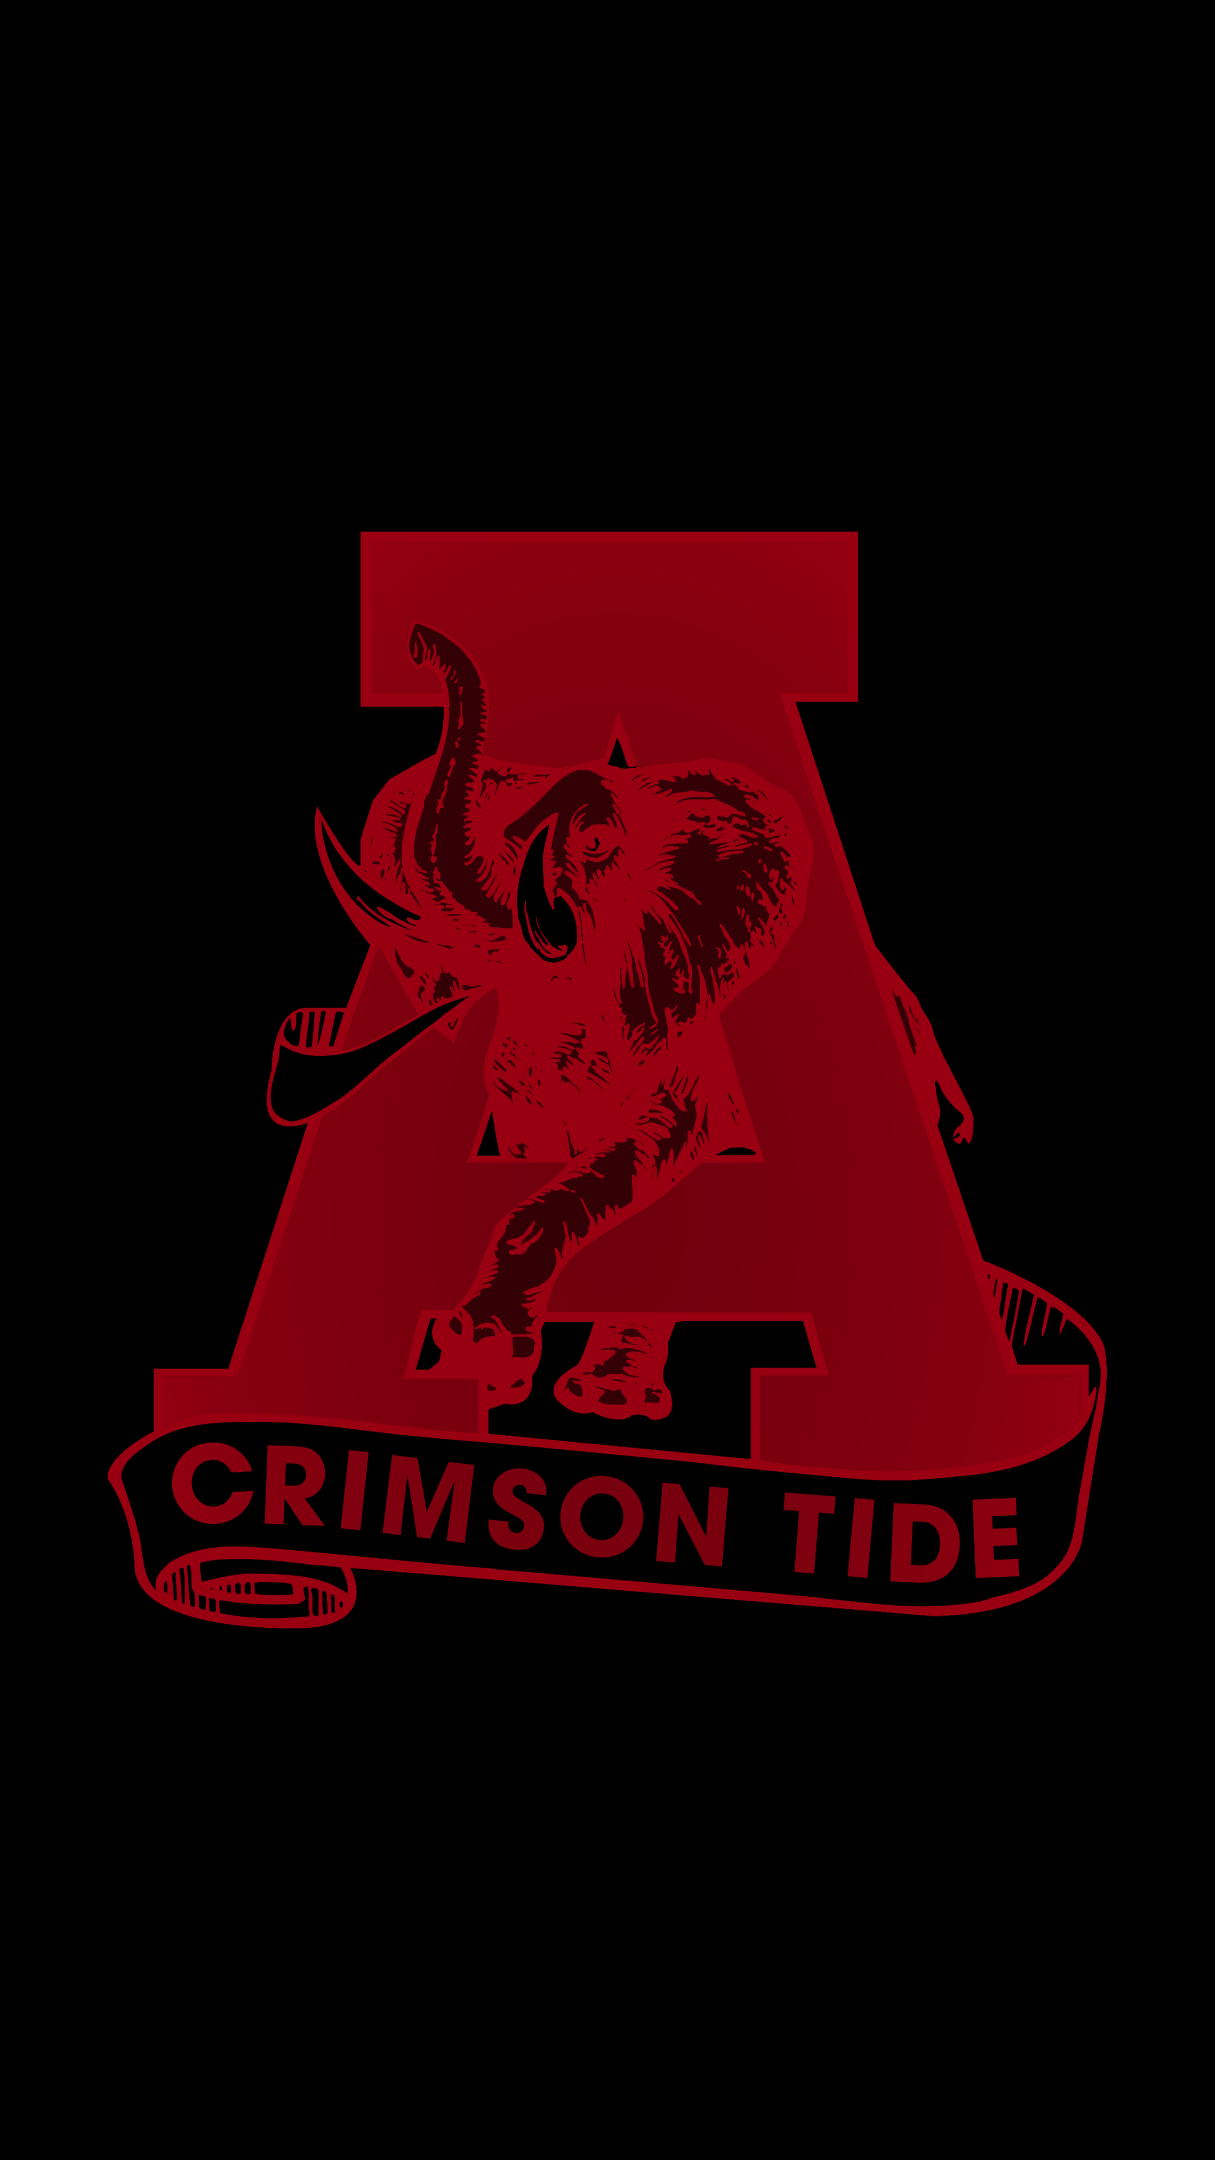 Alabama Crimson Tide Football Logo Wallpaper Iphone Android Roll Tid Alabama Crimson Tide Alabama Crimson Tide Football Alabama Crimson Tide Football Wallpaper